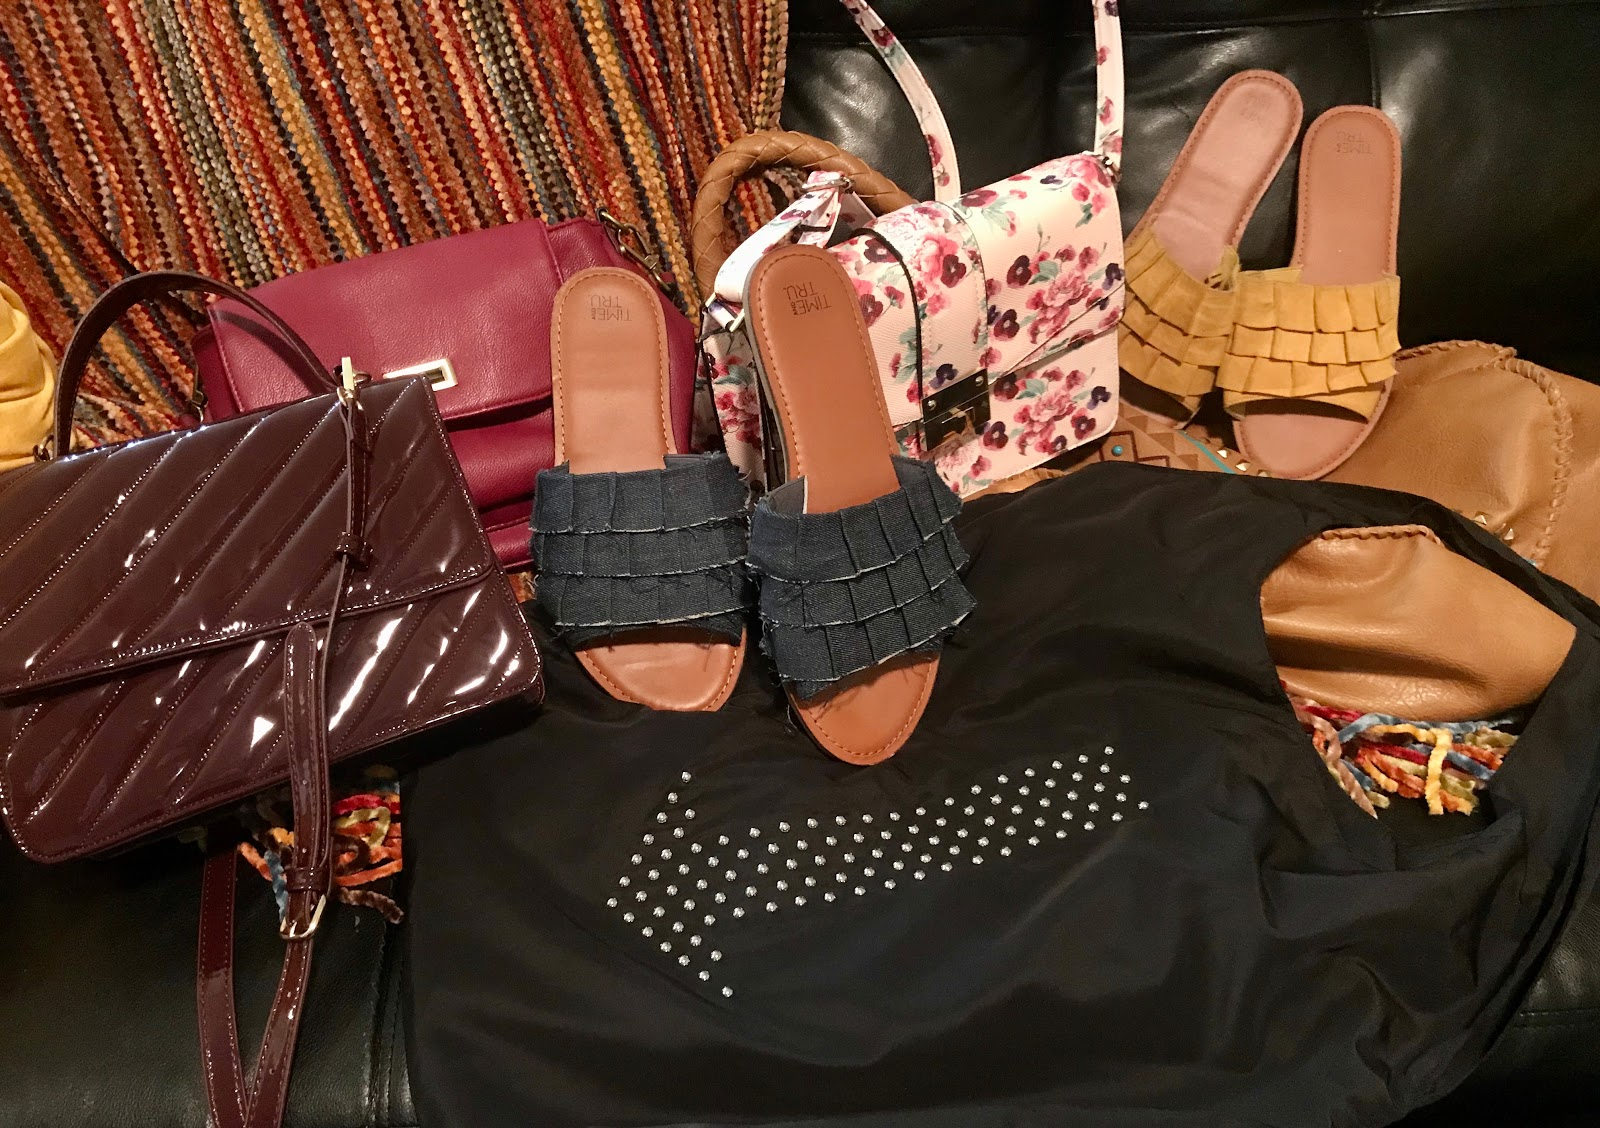 Getting rid of shoes, handbags, and more to donations. Morning Babbles